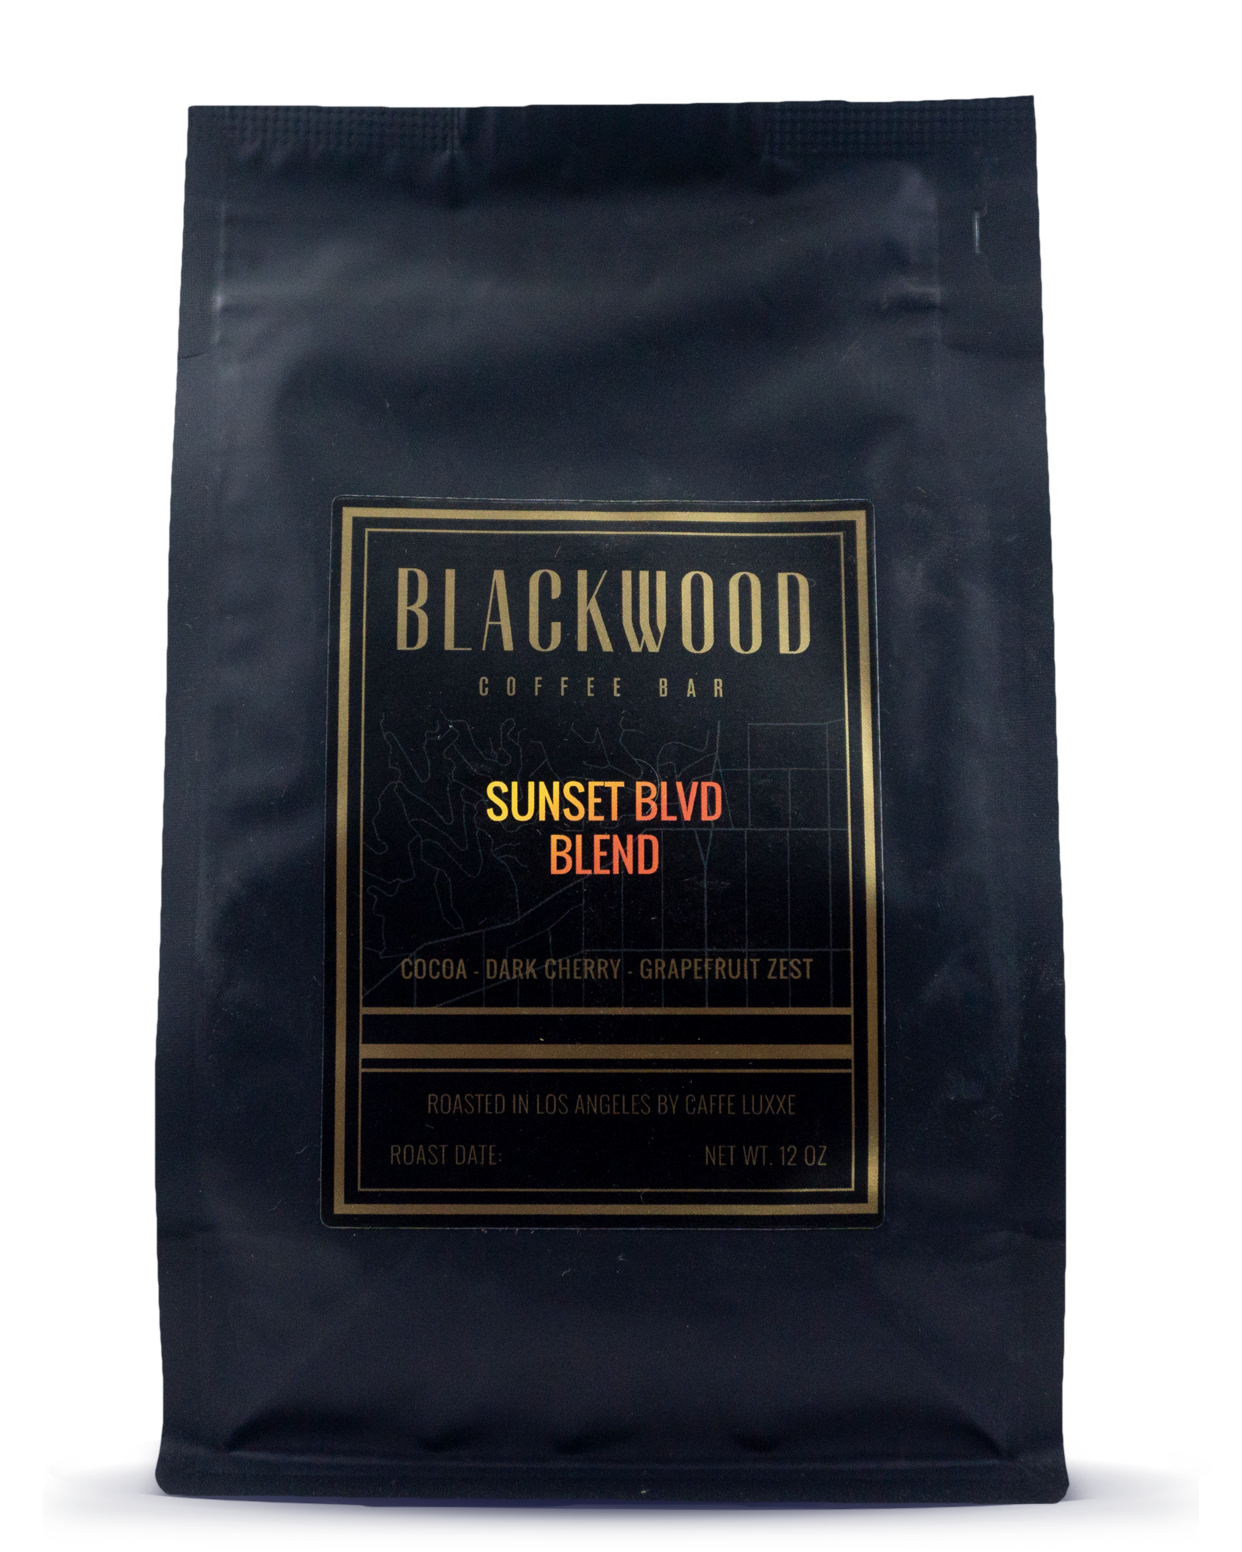 Sunset Blvd Blend (3-Month Subscription)